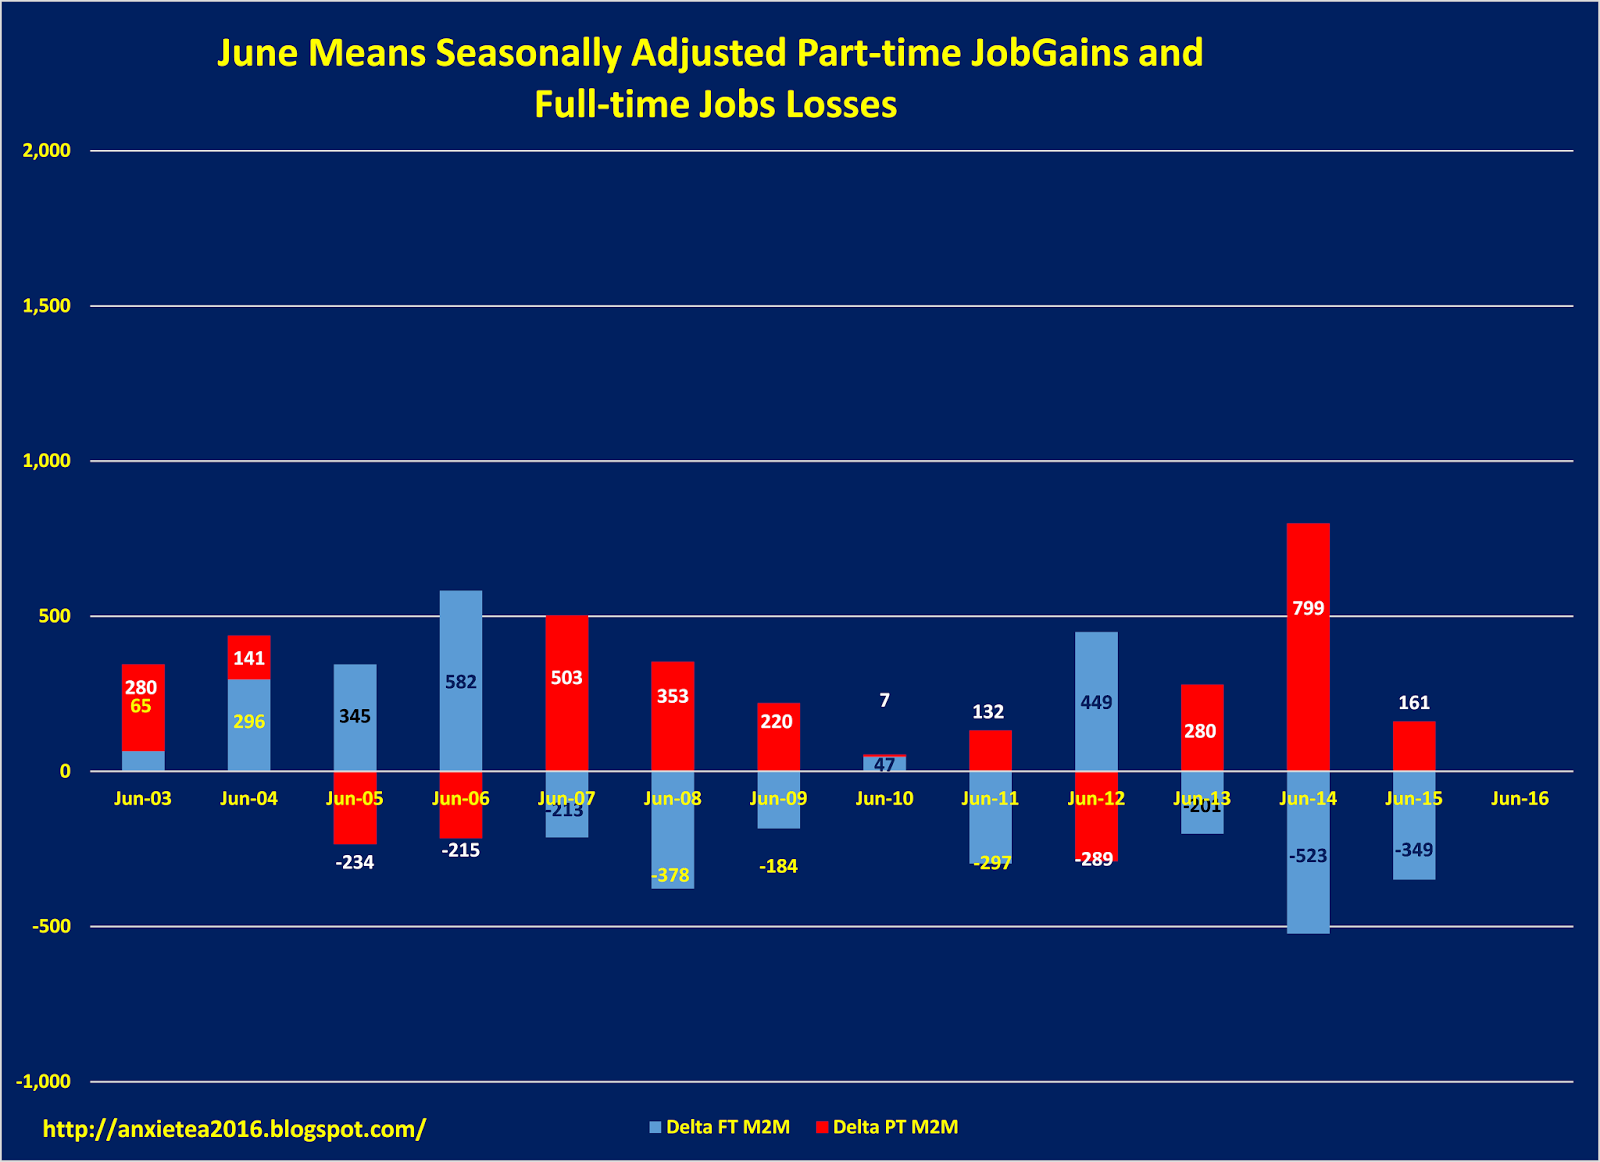 potential swoon for this month s jobs report could last we should see seasonally adjusted part time job growth and seasonally adjusted full time jobs decline the seasonally adjusted job change is not as great as